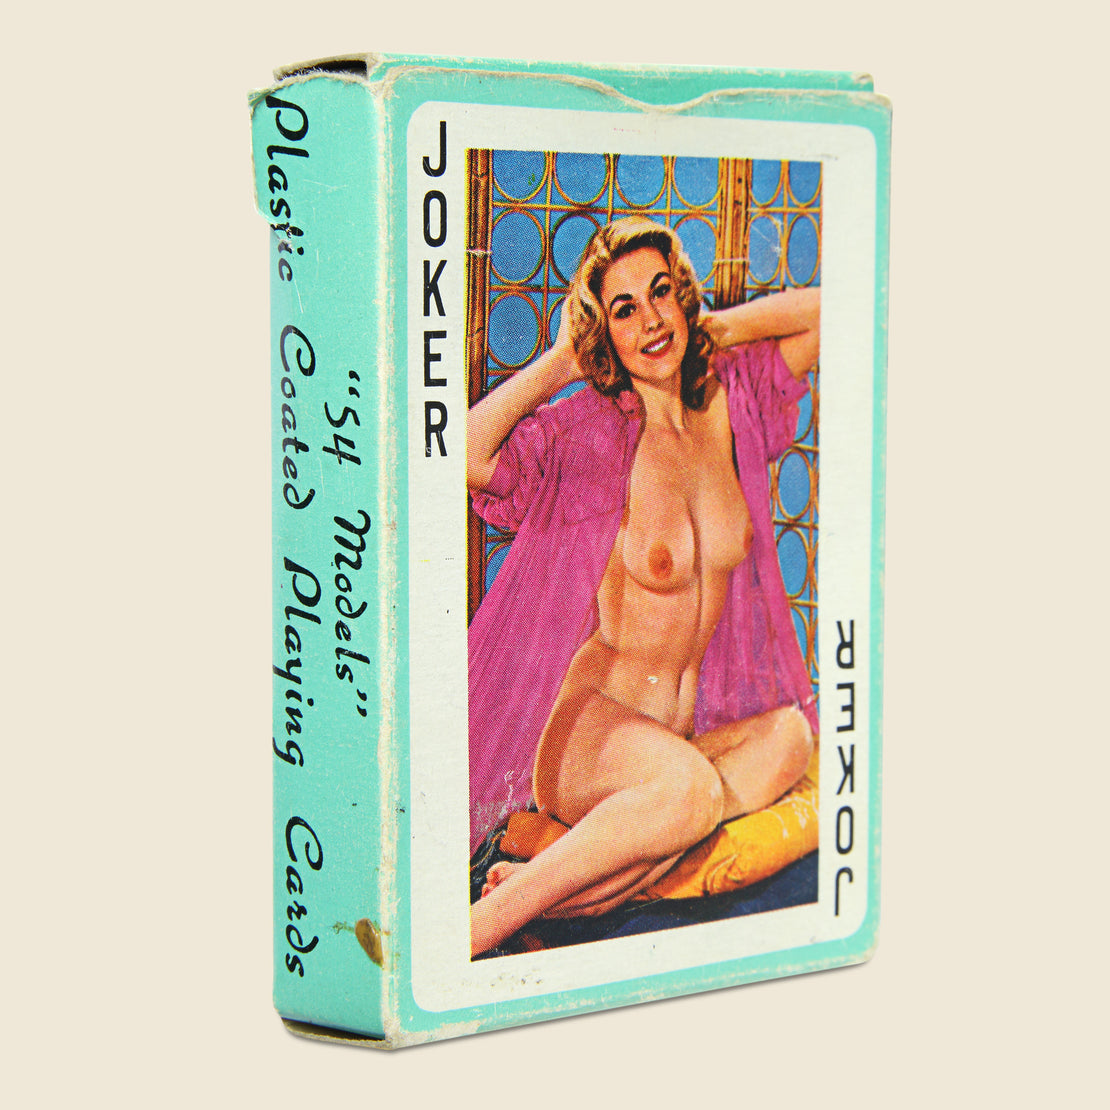 Vintage Deck of Honey Naughty Playing Cards Circa 1960s